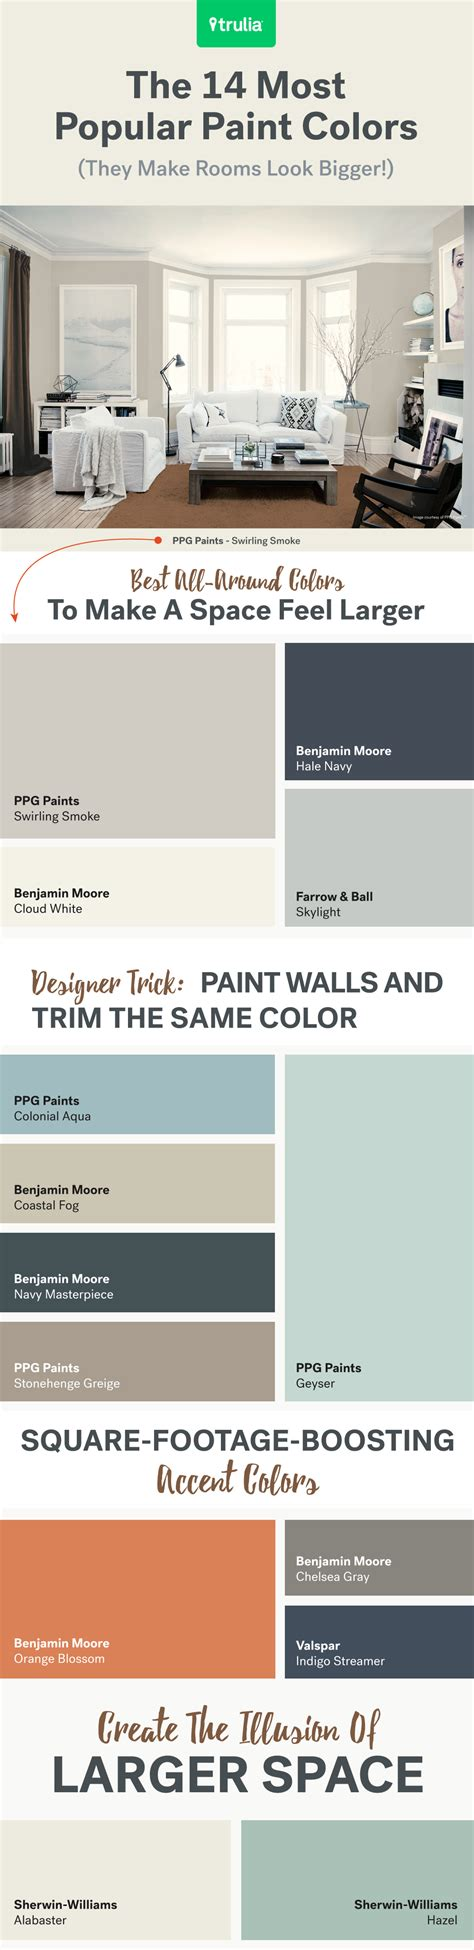 great paint colors for small rooms 14 popular paint colors for small rooms at home